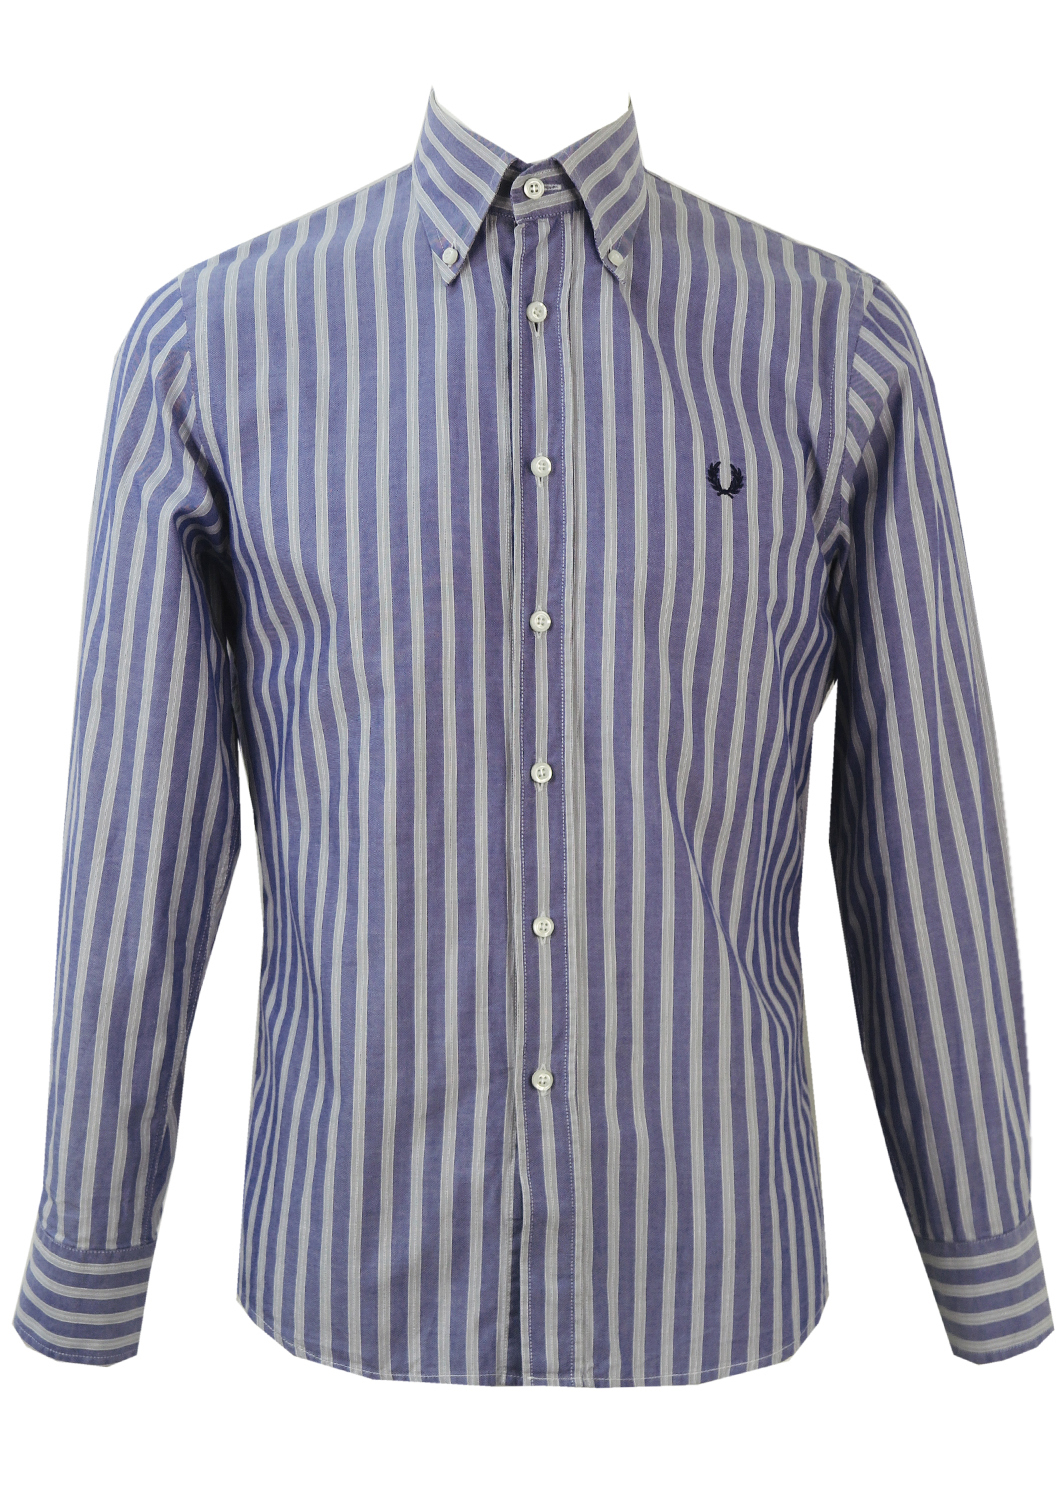 45fe79a4f Fred Perry Blue and Grey Striped Shirt – L – Reign Vintage